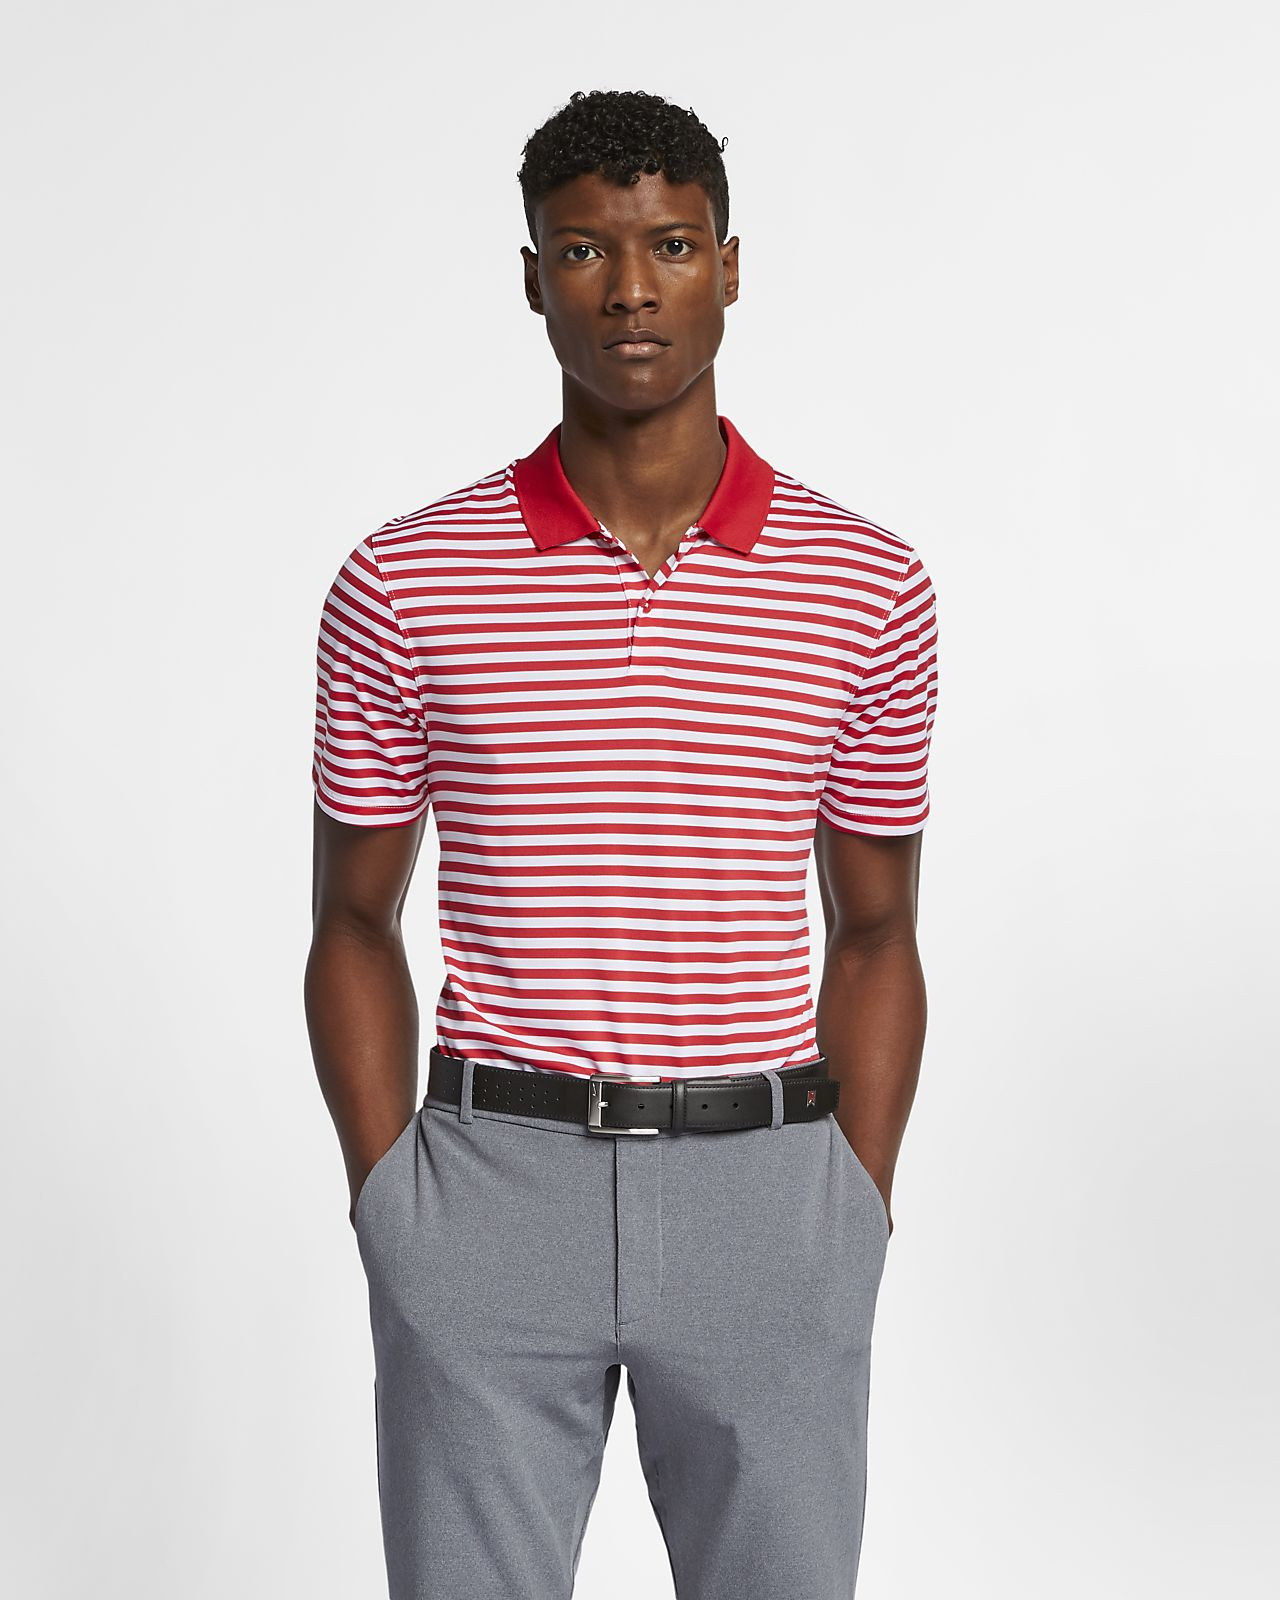 0e93618f9 Nike Dri-FIT Victory Men's Striped Golf Polo. Nike.com